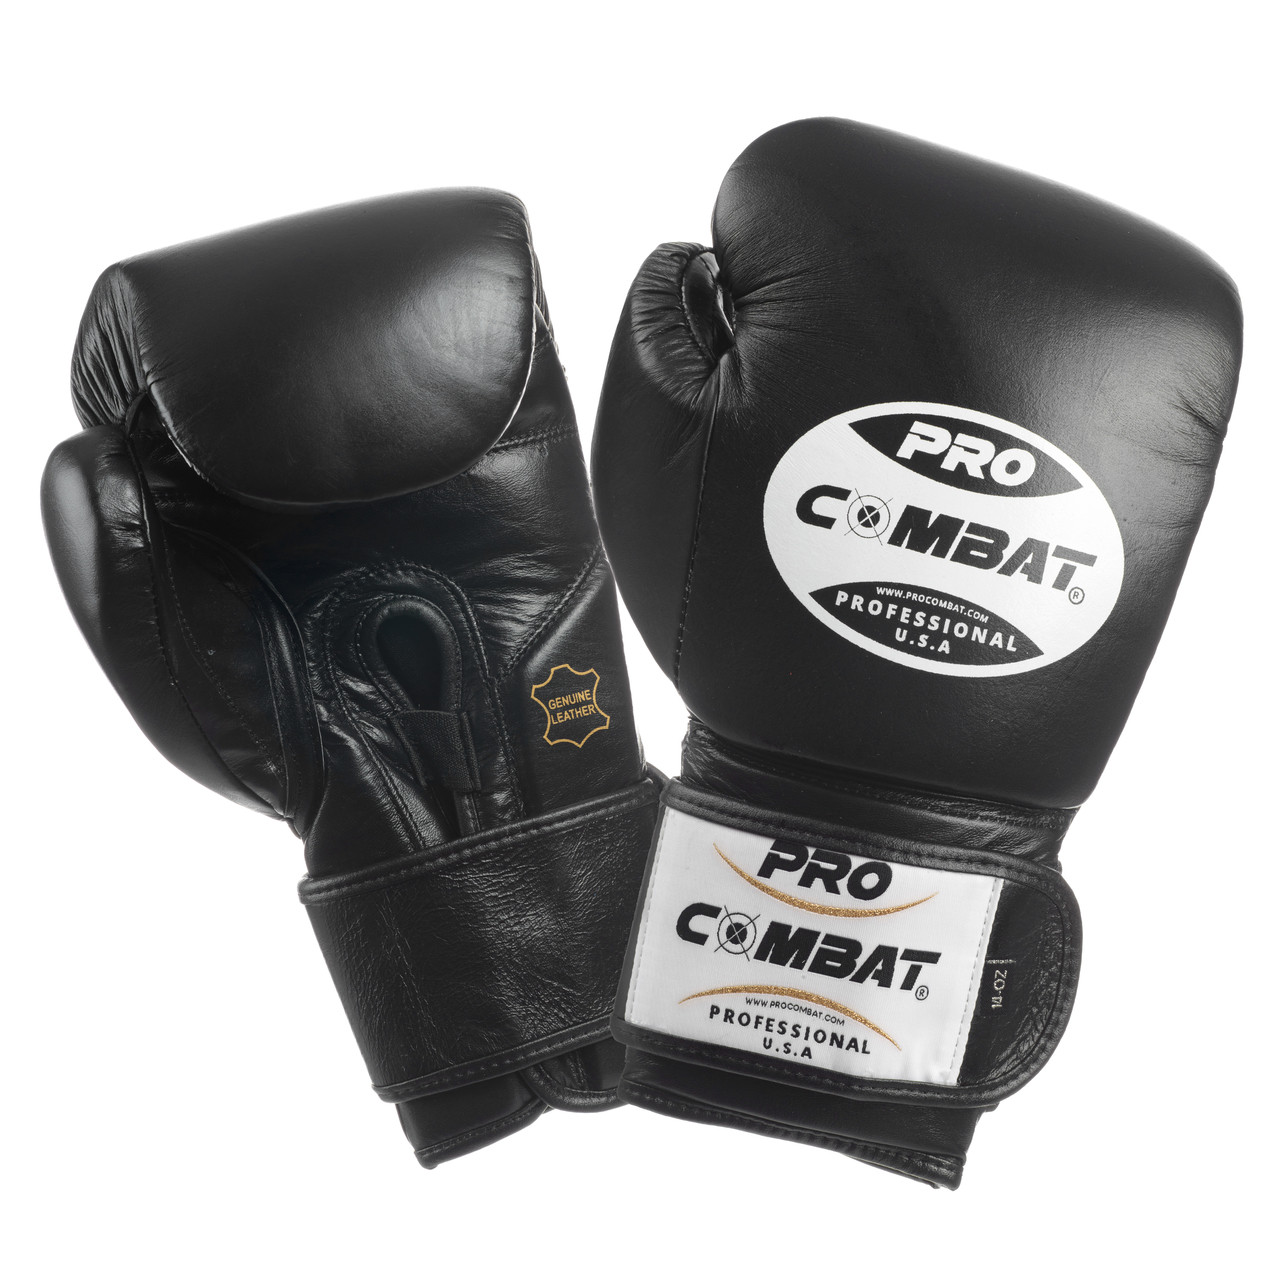 Pro Combat Training Gloves With Velcro Closure Black Color Usa Boxing Equipment